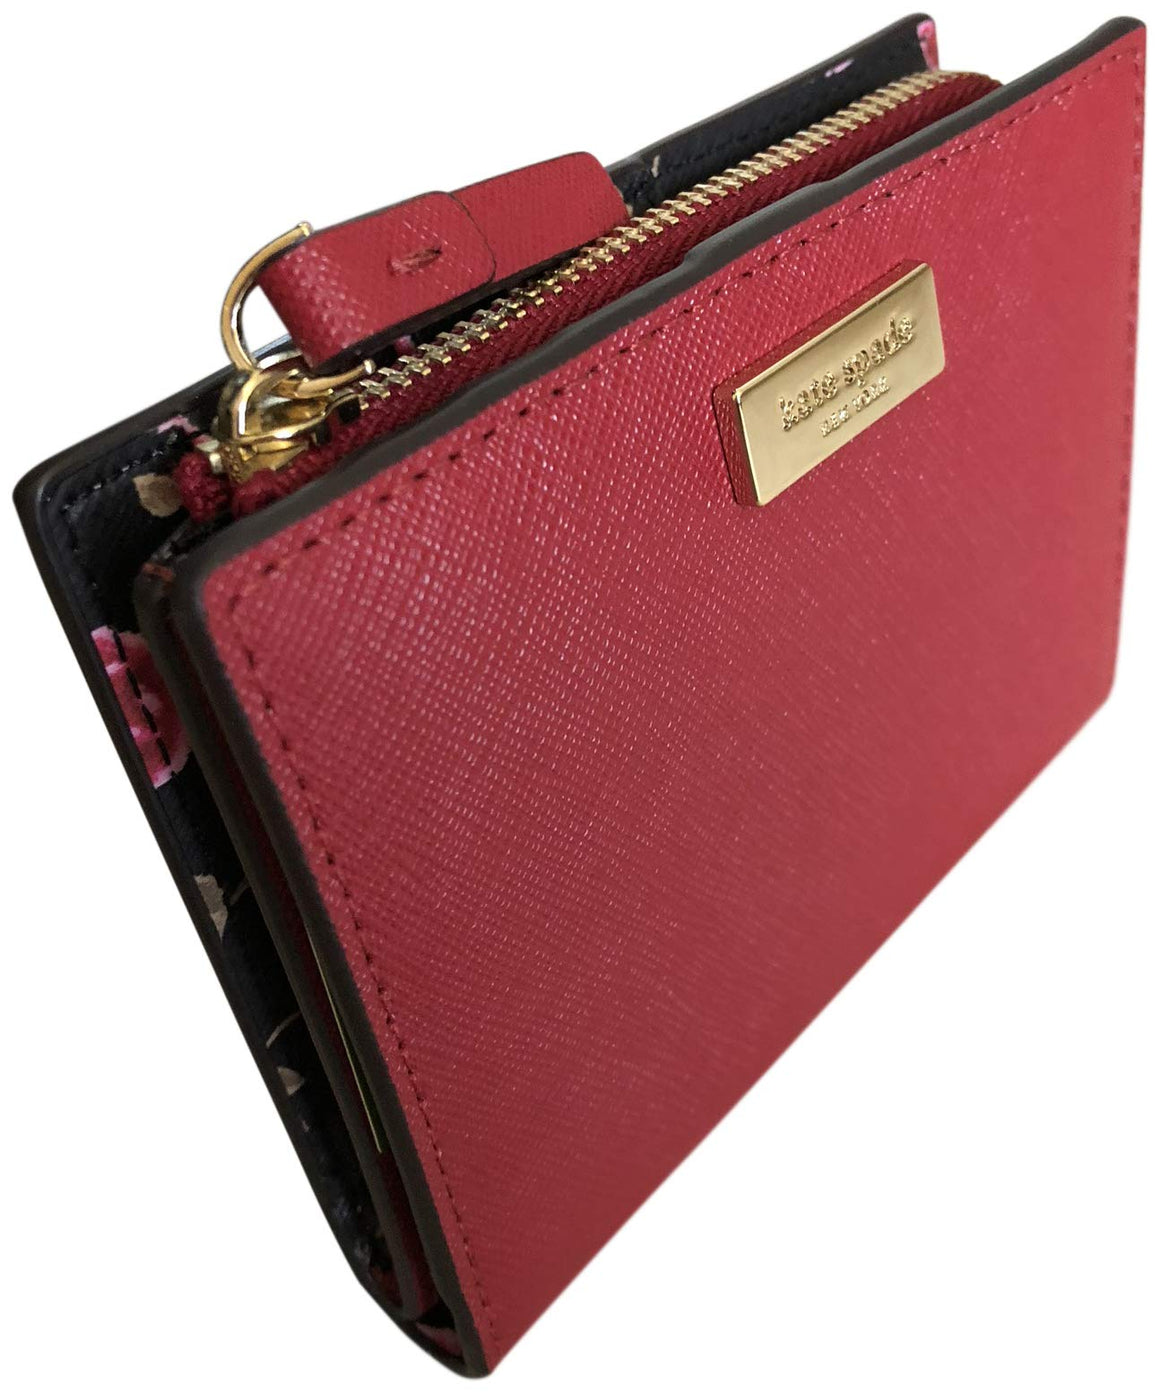 Kate Spade WLRU5049 Shawn Laurel Way Hazy Rose Saffiano Leather Wallet Red Womens Wallets Kate Spade